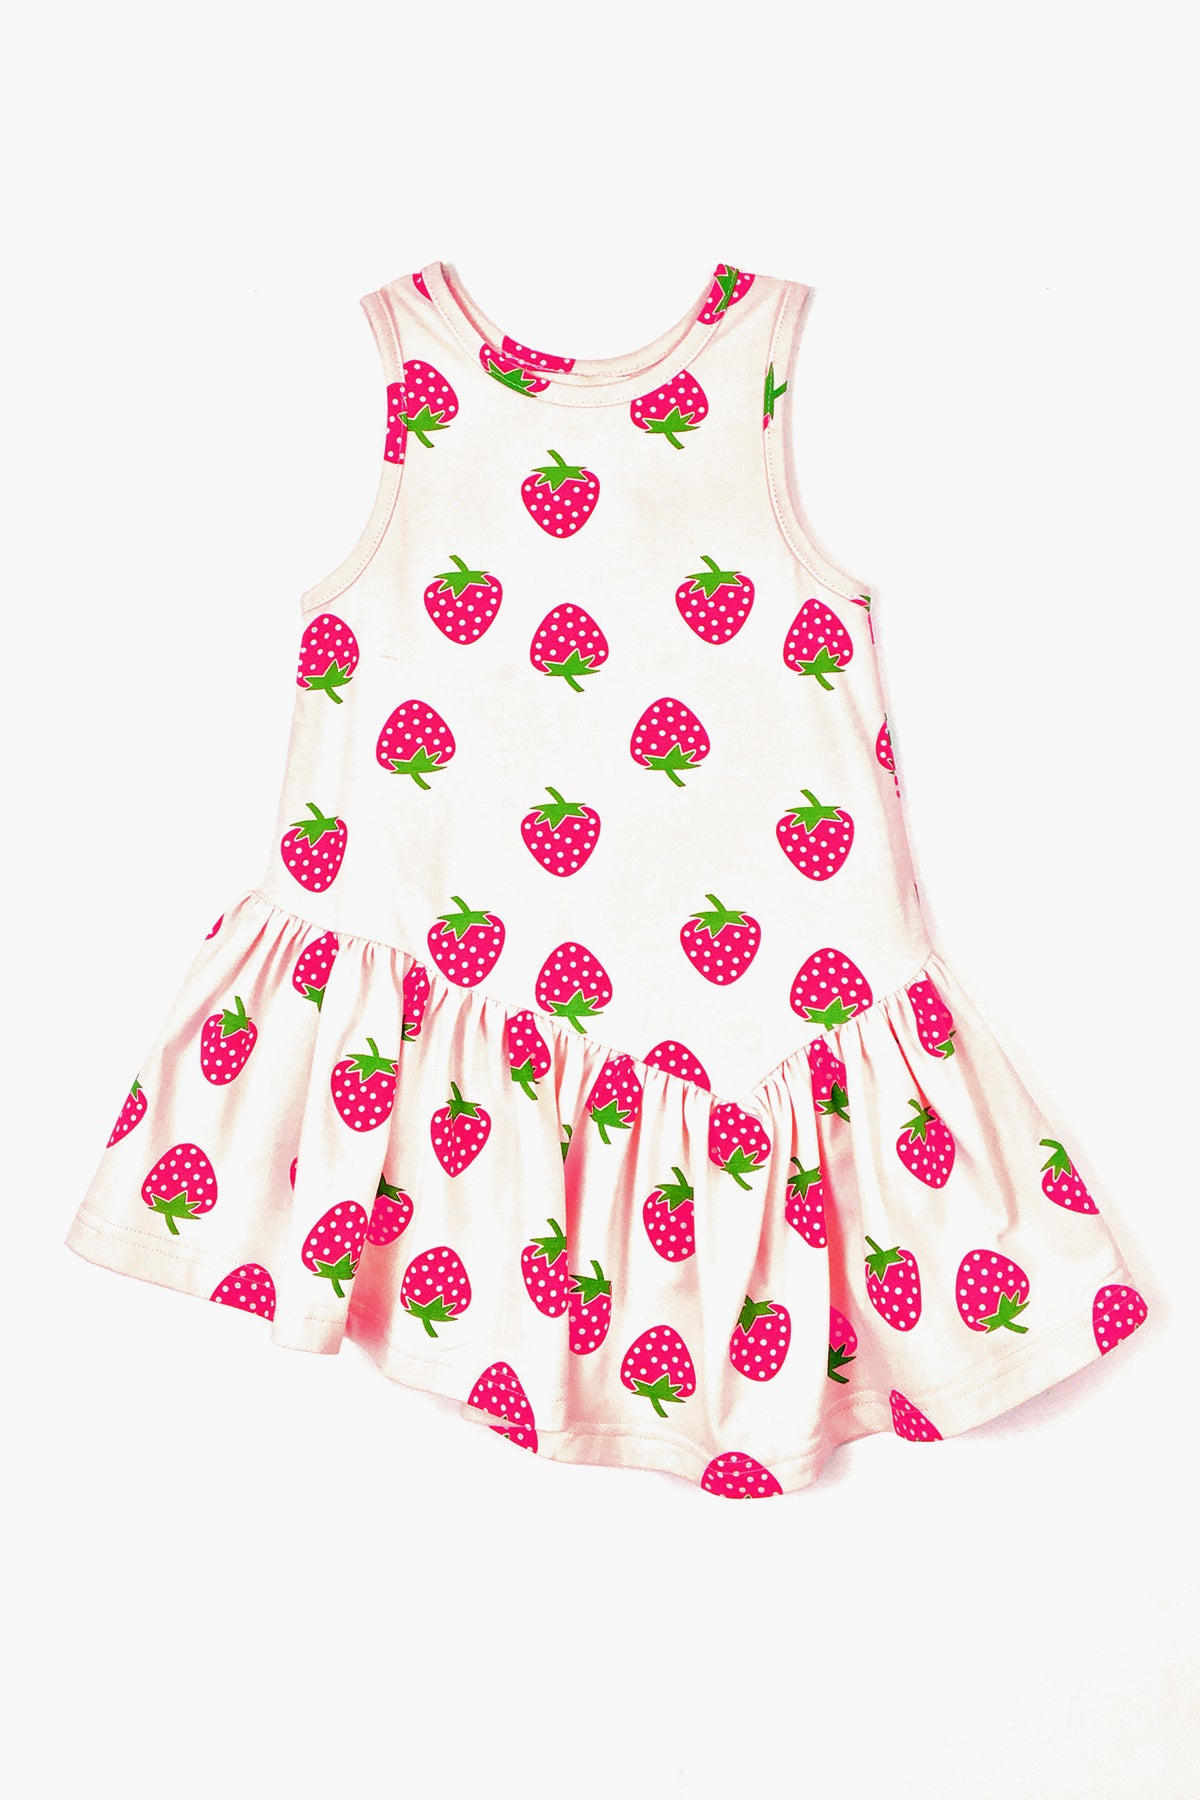 Peas and Queues Kauai Girls Dress (Size 3 left)